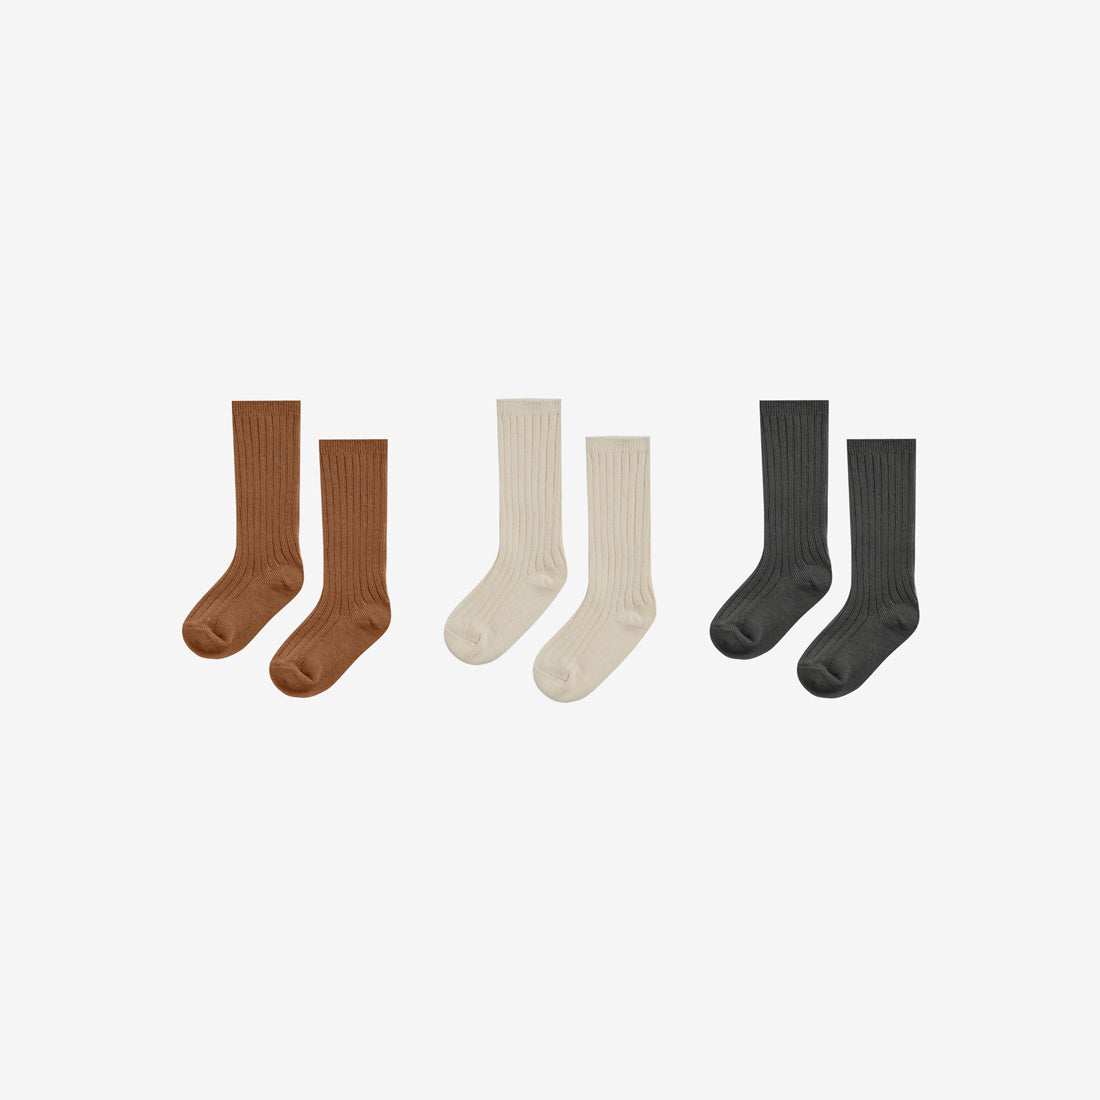 Organic Cotton Rib Knee Socks Set3 - Cinnamon/Natural/Black